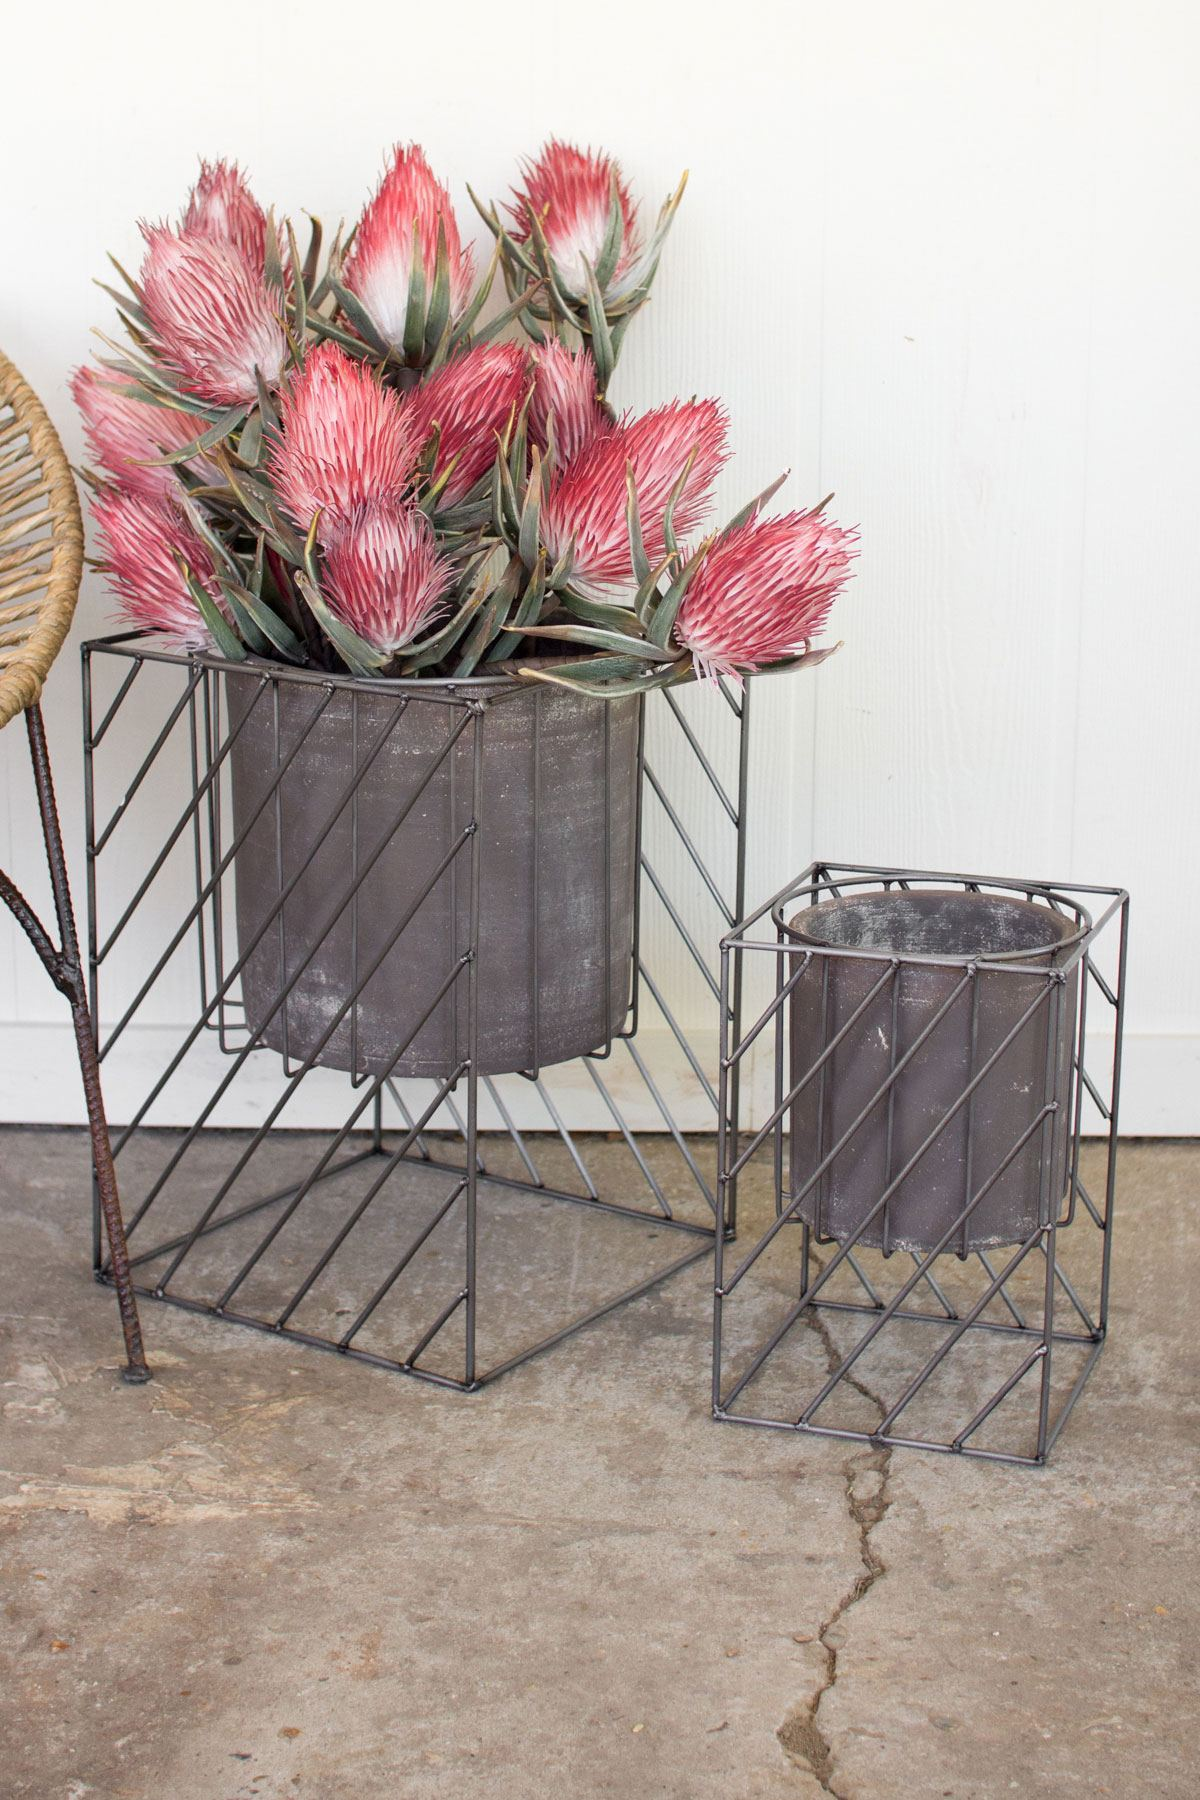 Kalalou Set Of Square Iron Stands With Grey Pots Leisure